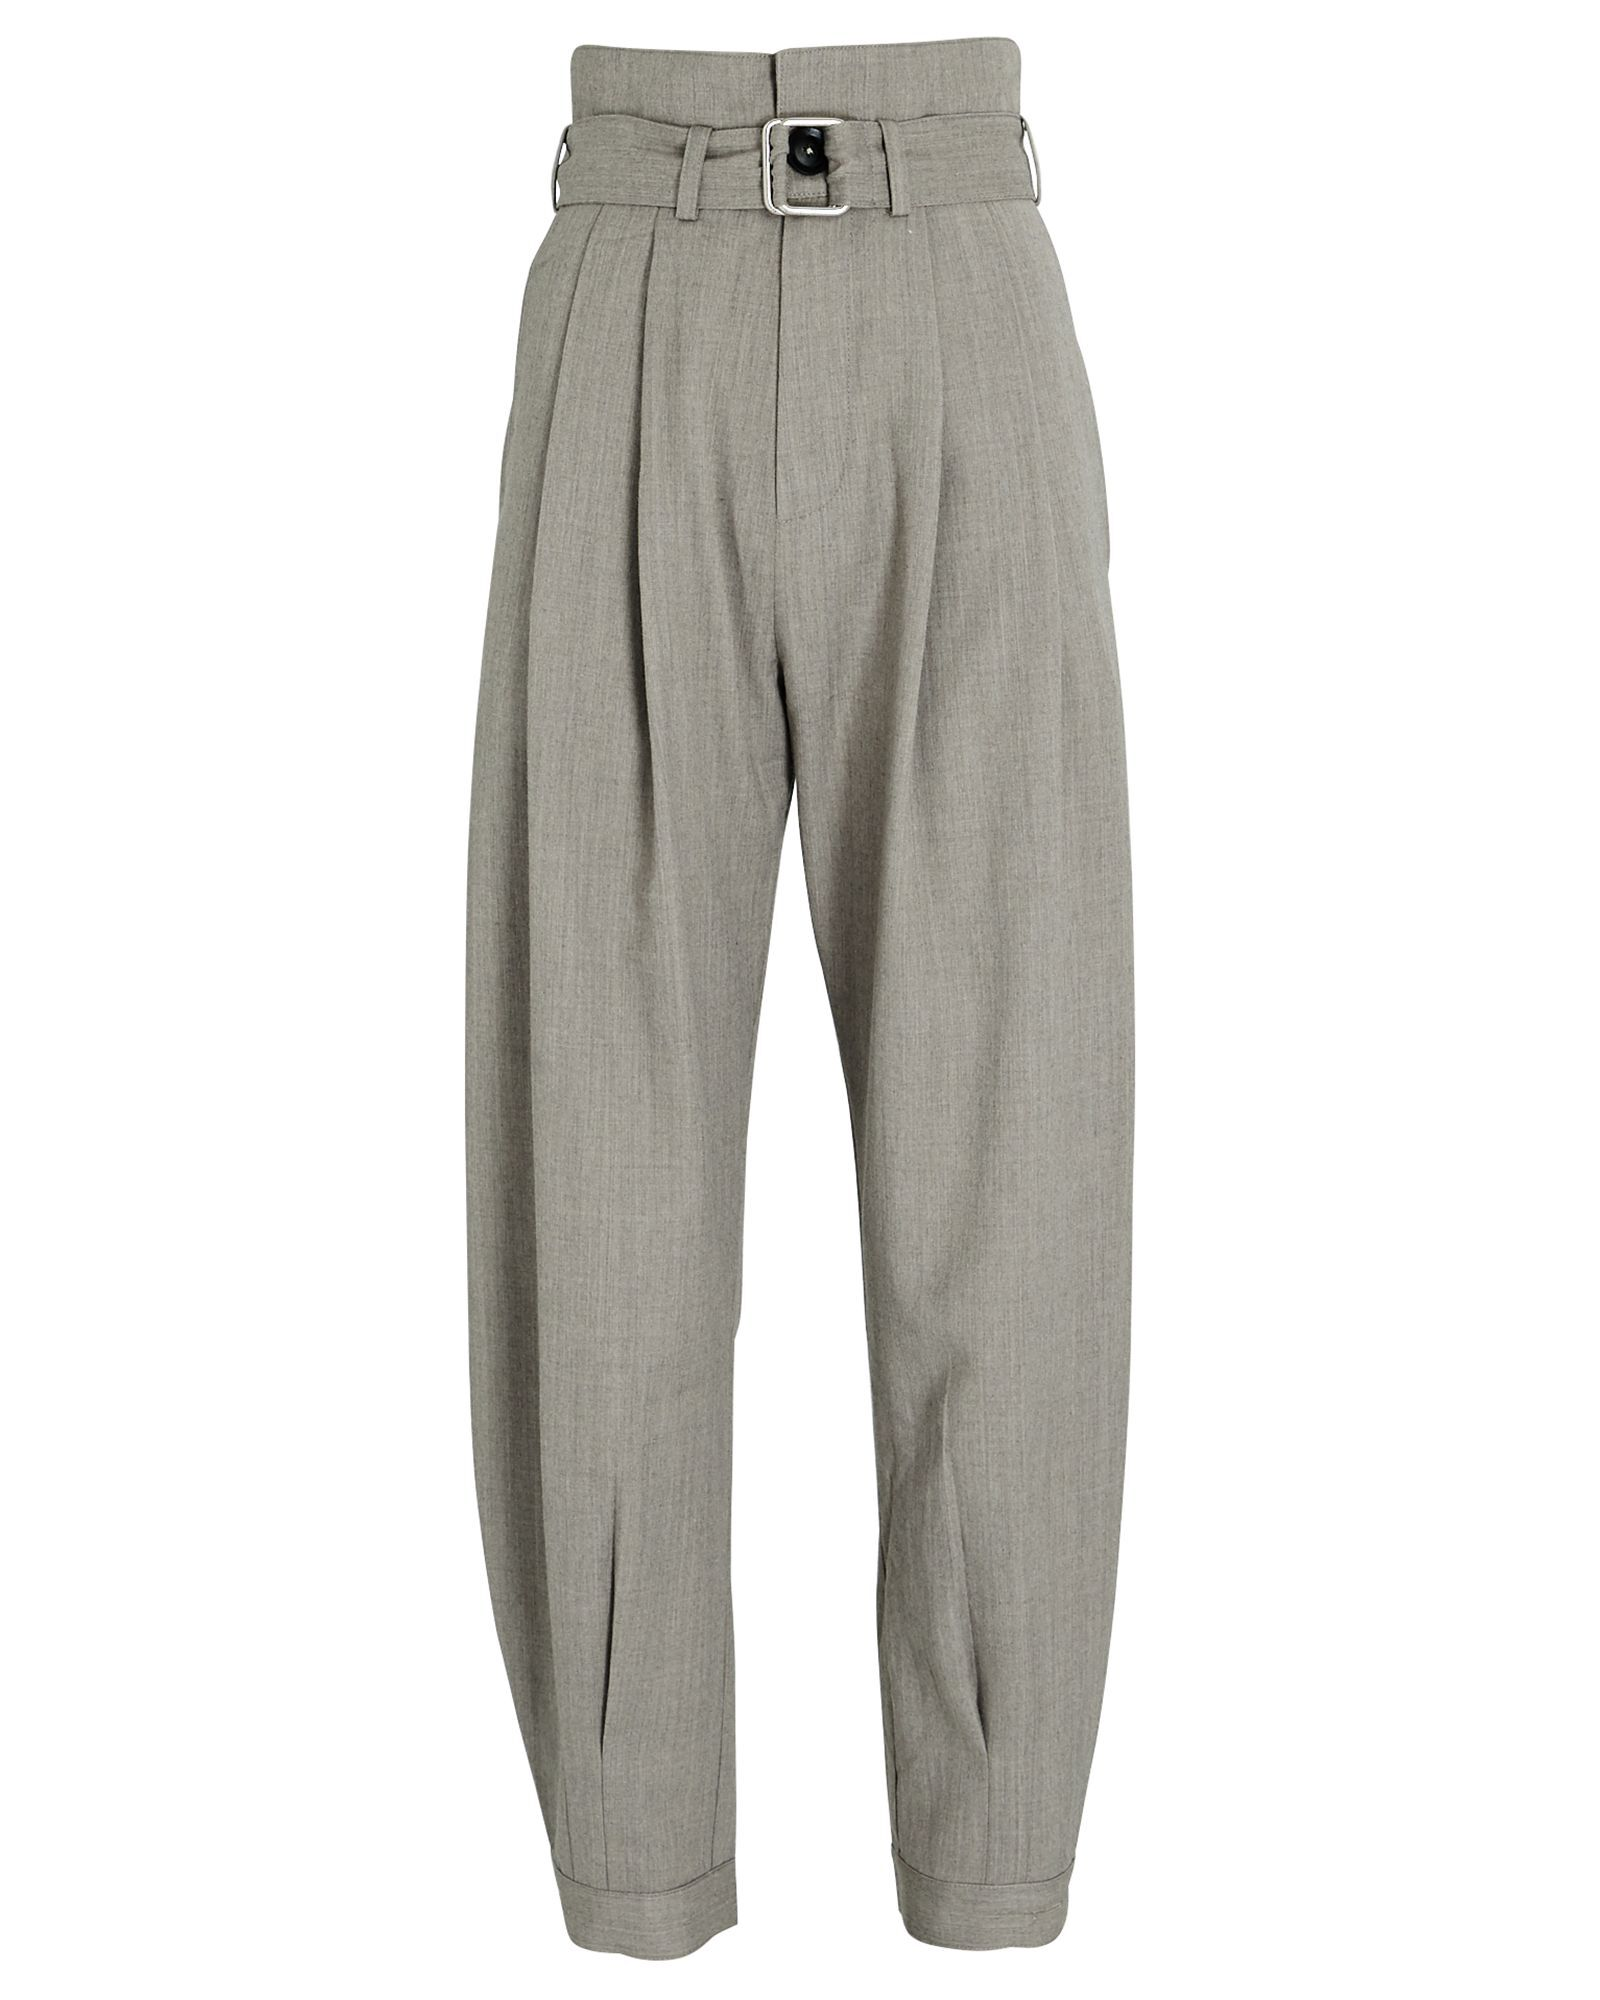 Billy Belted Trousers, GREY, hi-res